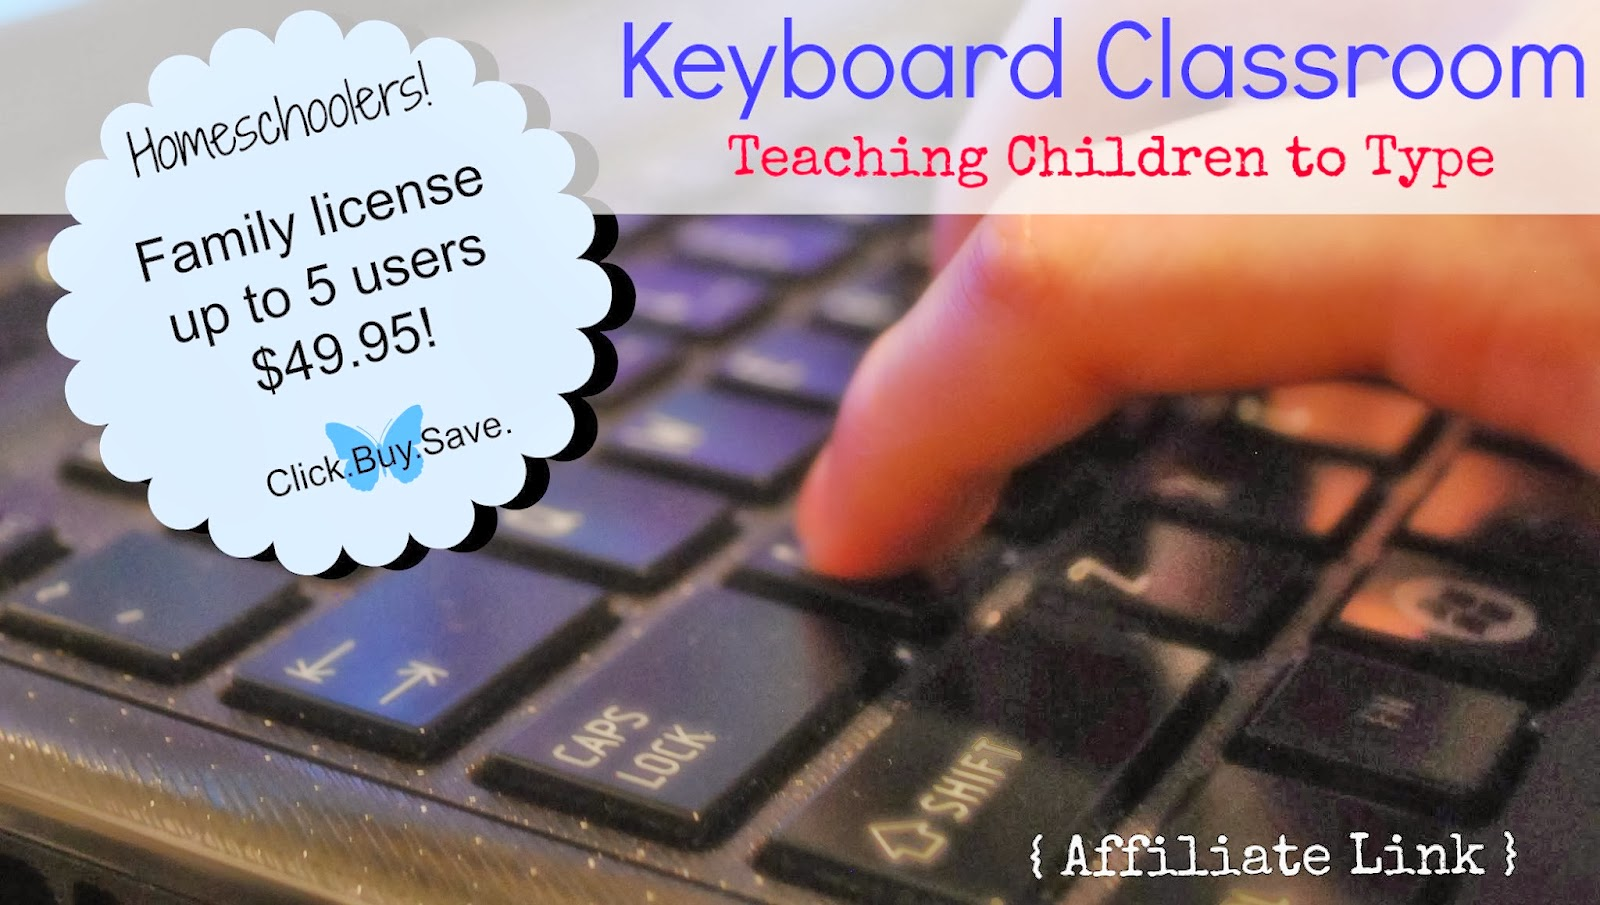 http://www.keyboardclassroom.com/affiliates/?wp_affiliate_view=members_only